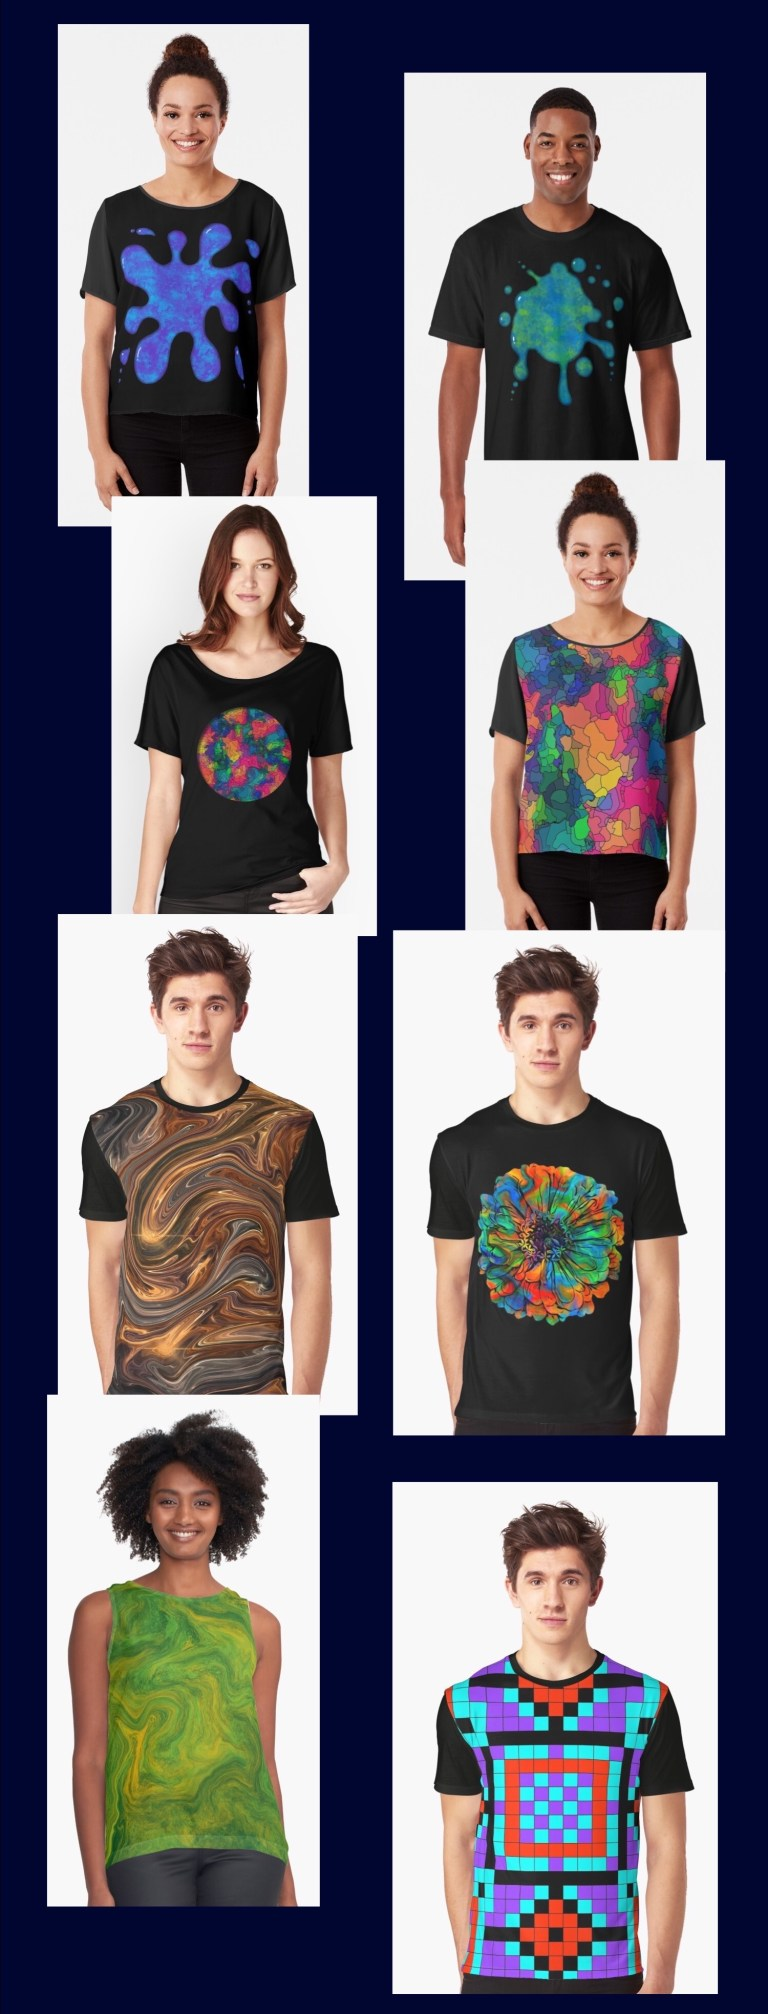 A large variety of men's and women's t-shirts, sweatshirts, and more, each one available in up to 25 of my designs.